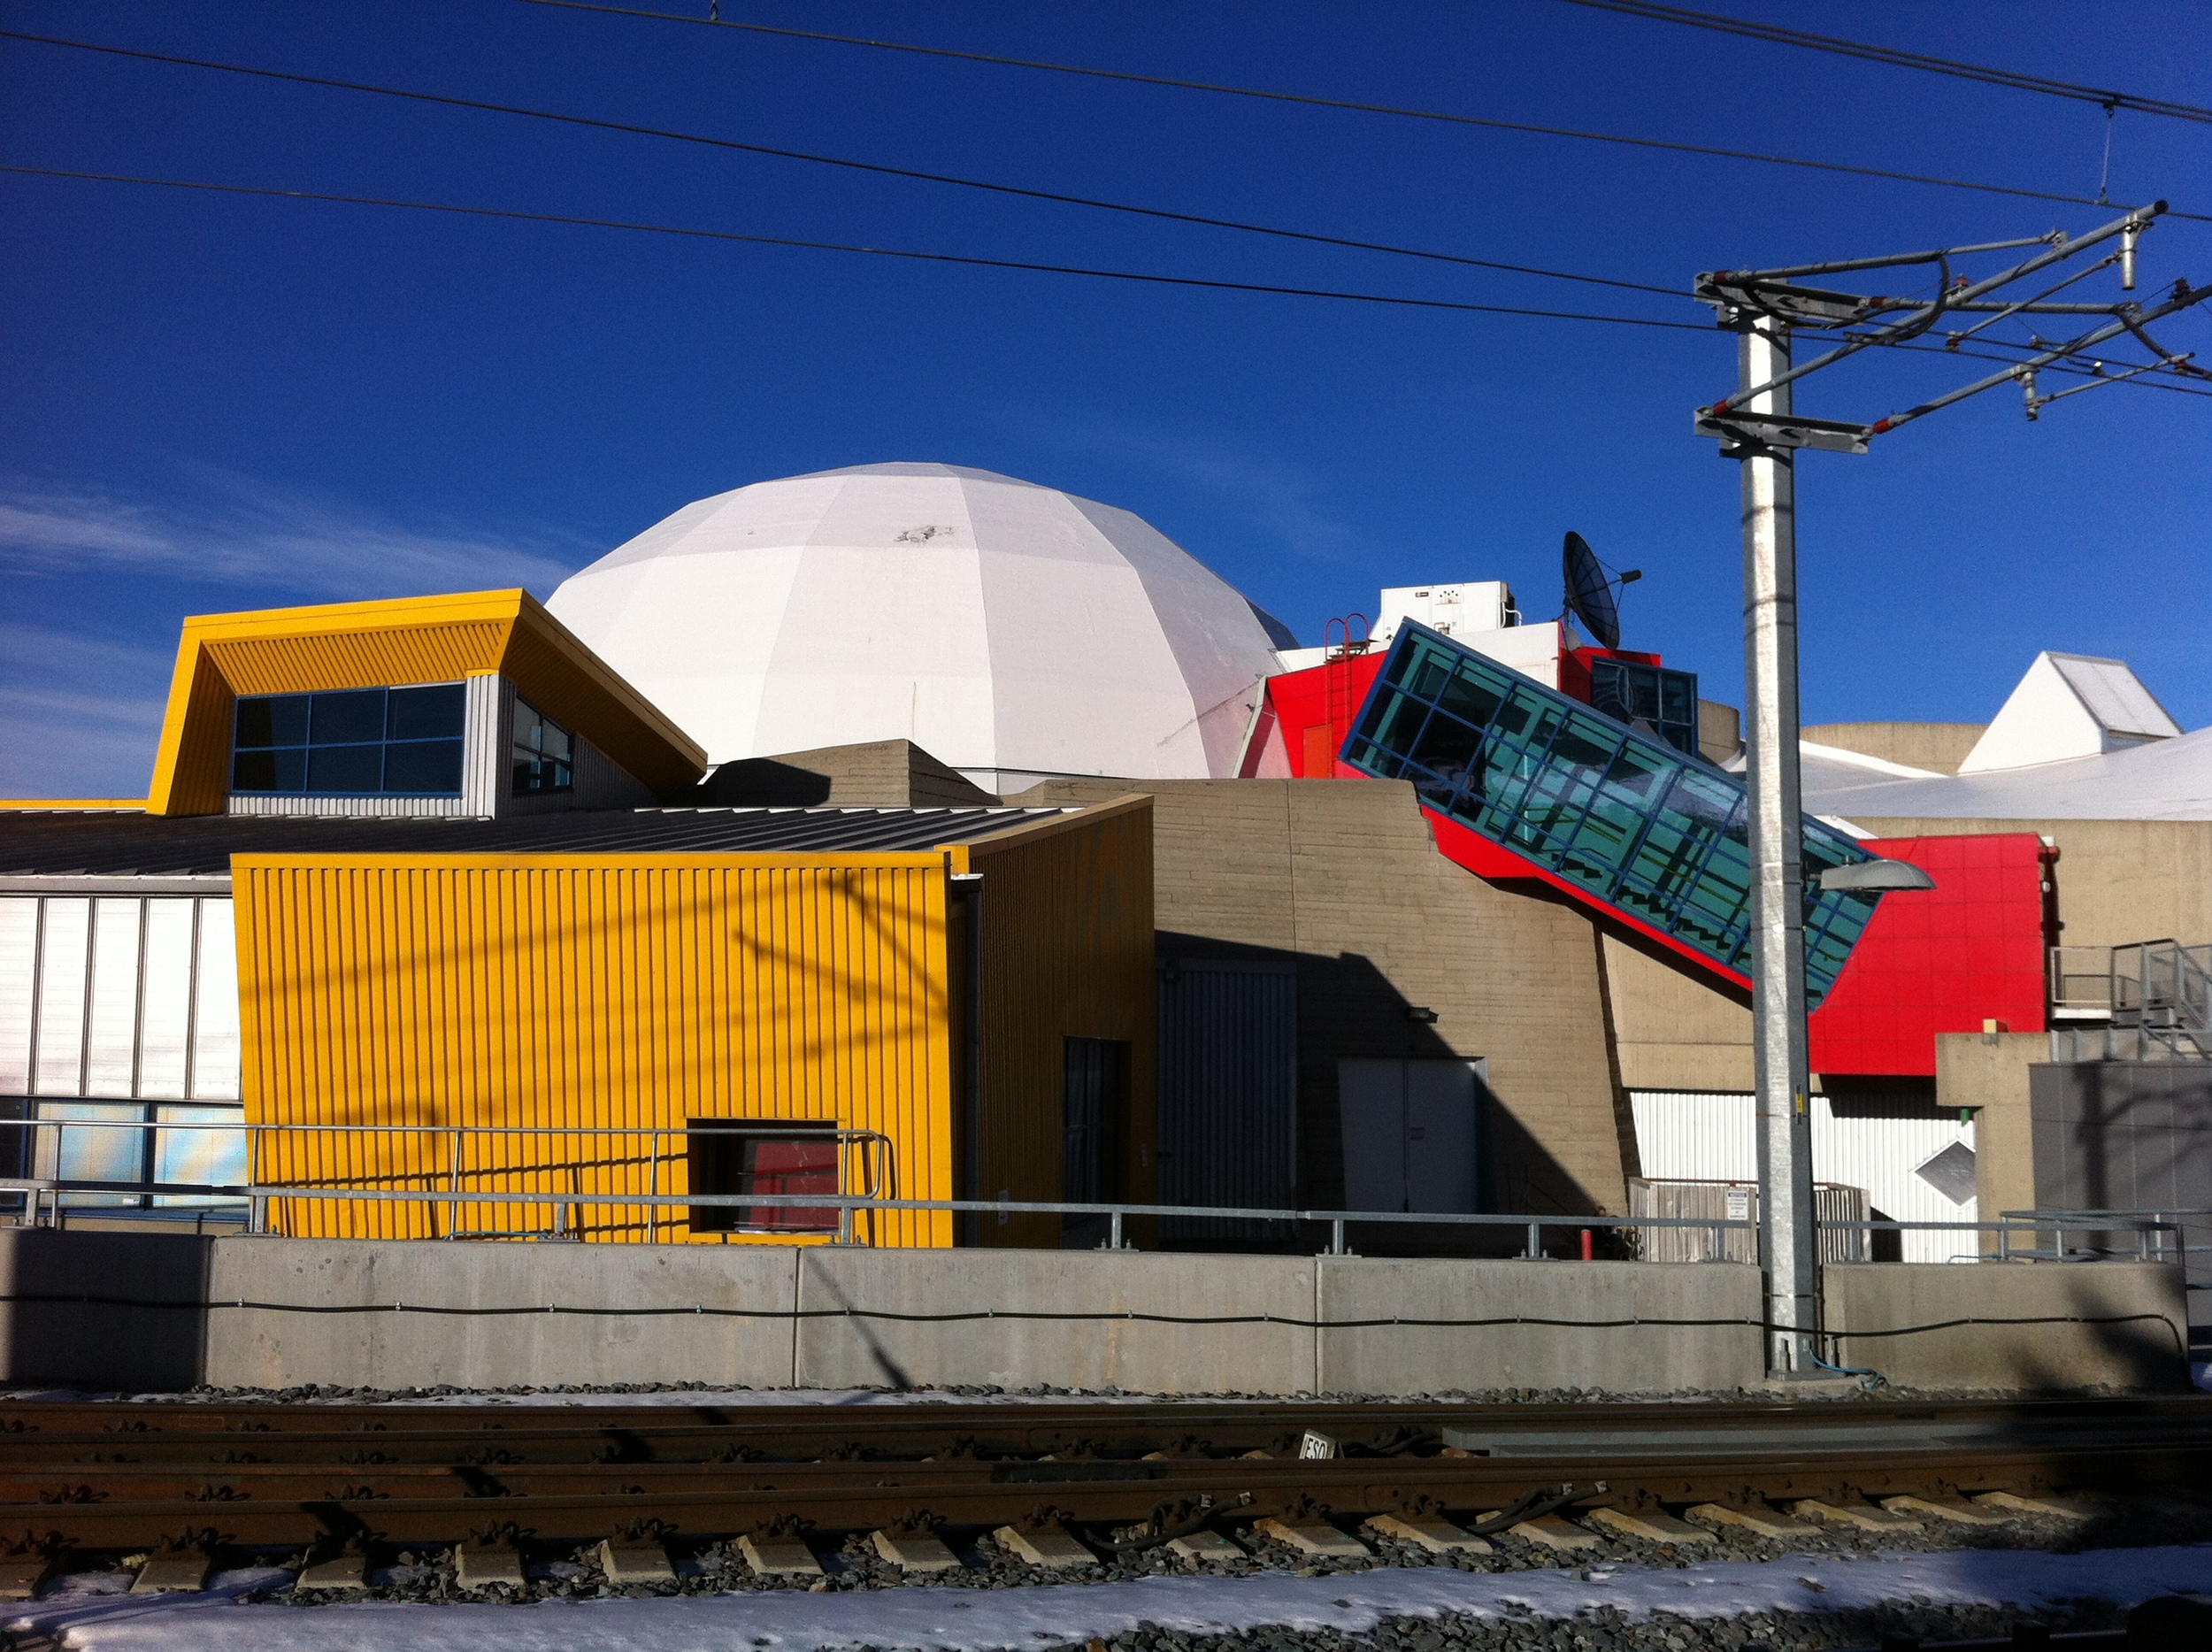 The 1967 Centennial Planetarium and Science Centre building is currently empty while Contemporary Calgary determines how best to convert it into a public art gallery/museum space and then raise the money for renovations and operating costs.